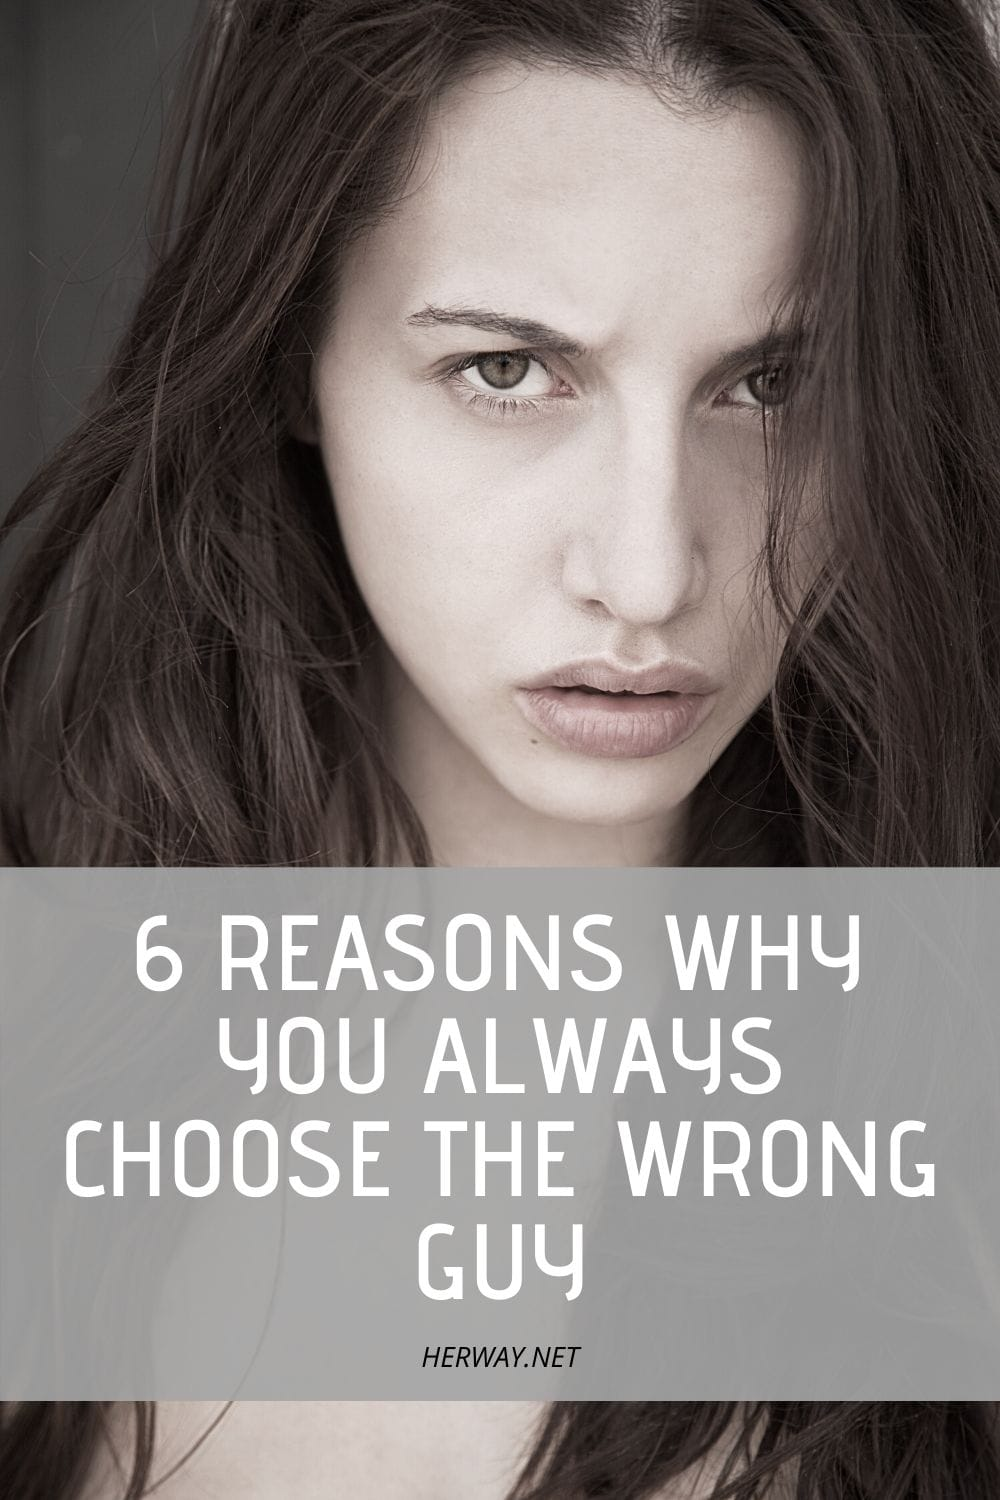 6 Reasons Why You Always Choose The Wrong Guy